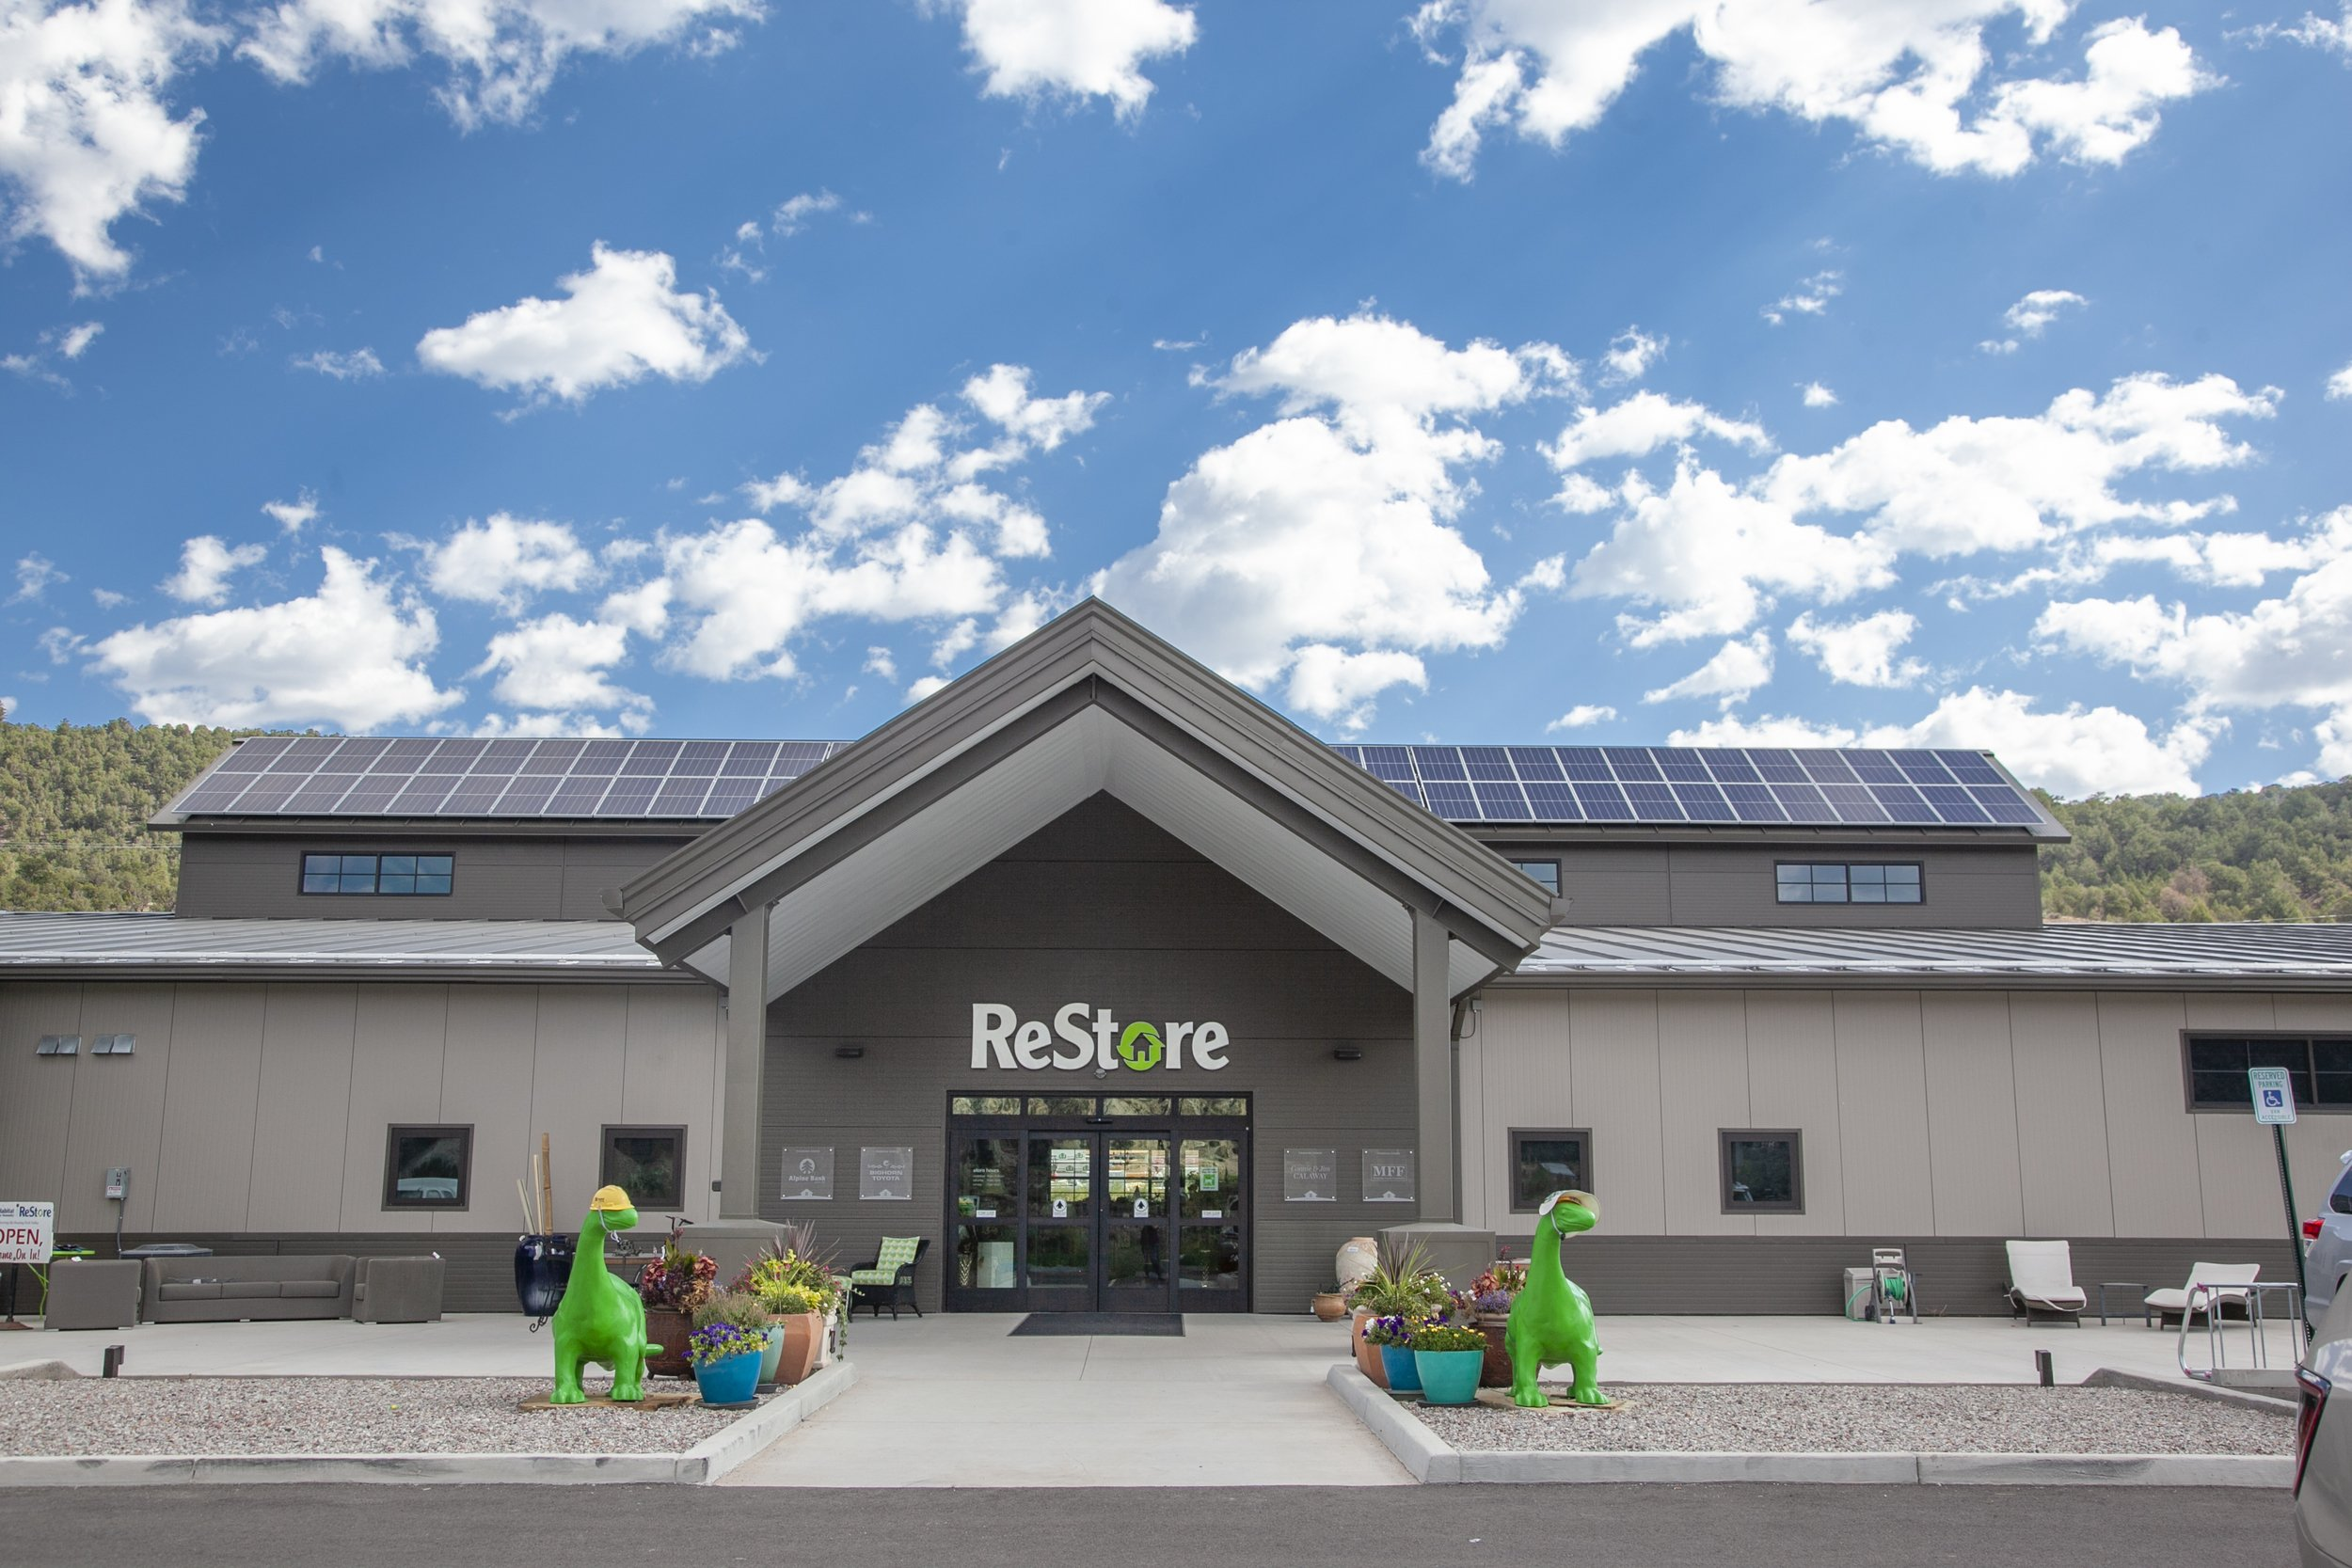 ReStore location in the Roaring Fork Valley, Colorado - Habitat for Humanity